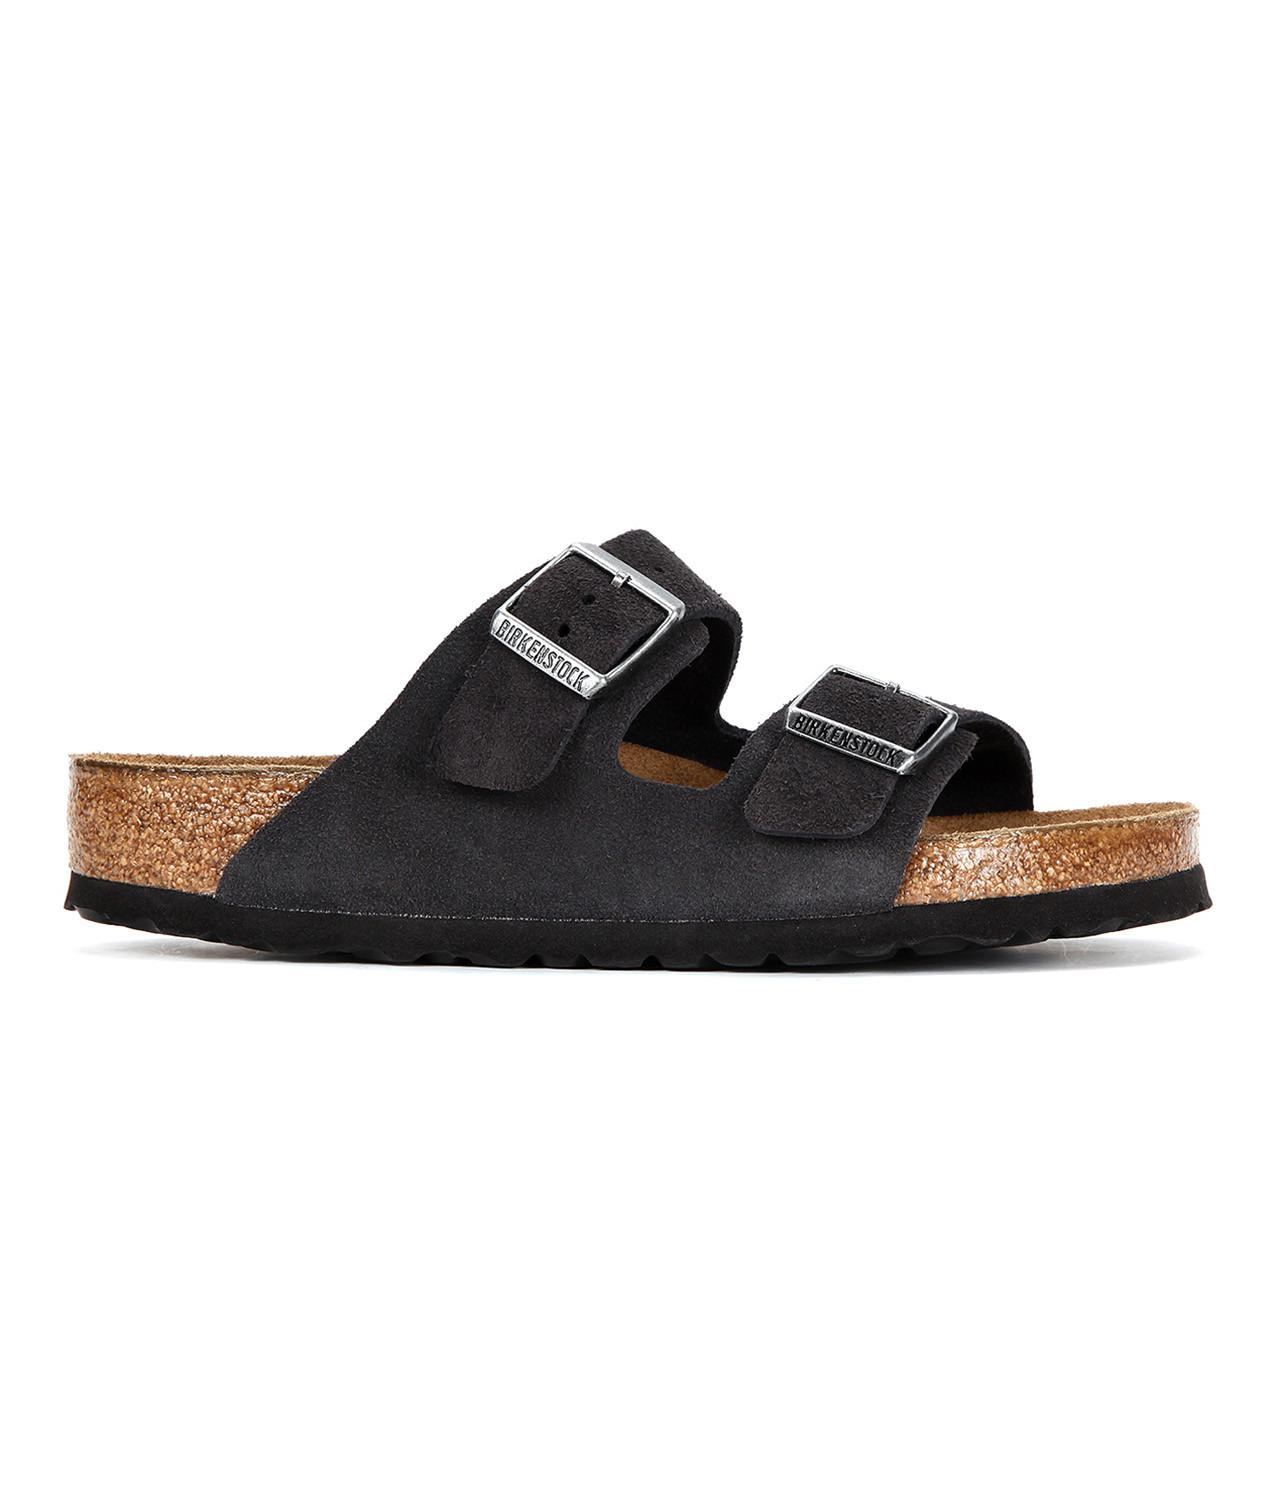 487a803bb36 Birkenstock - Gray Arizona Soft Footbed Suede for Men - Lyst. View  fullscreen